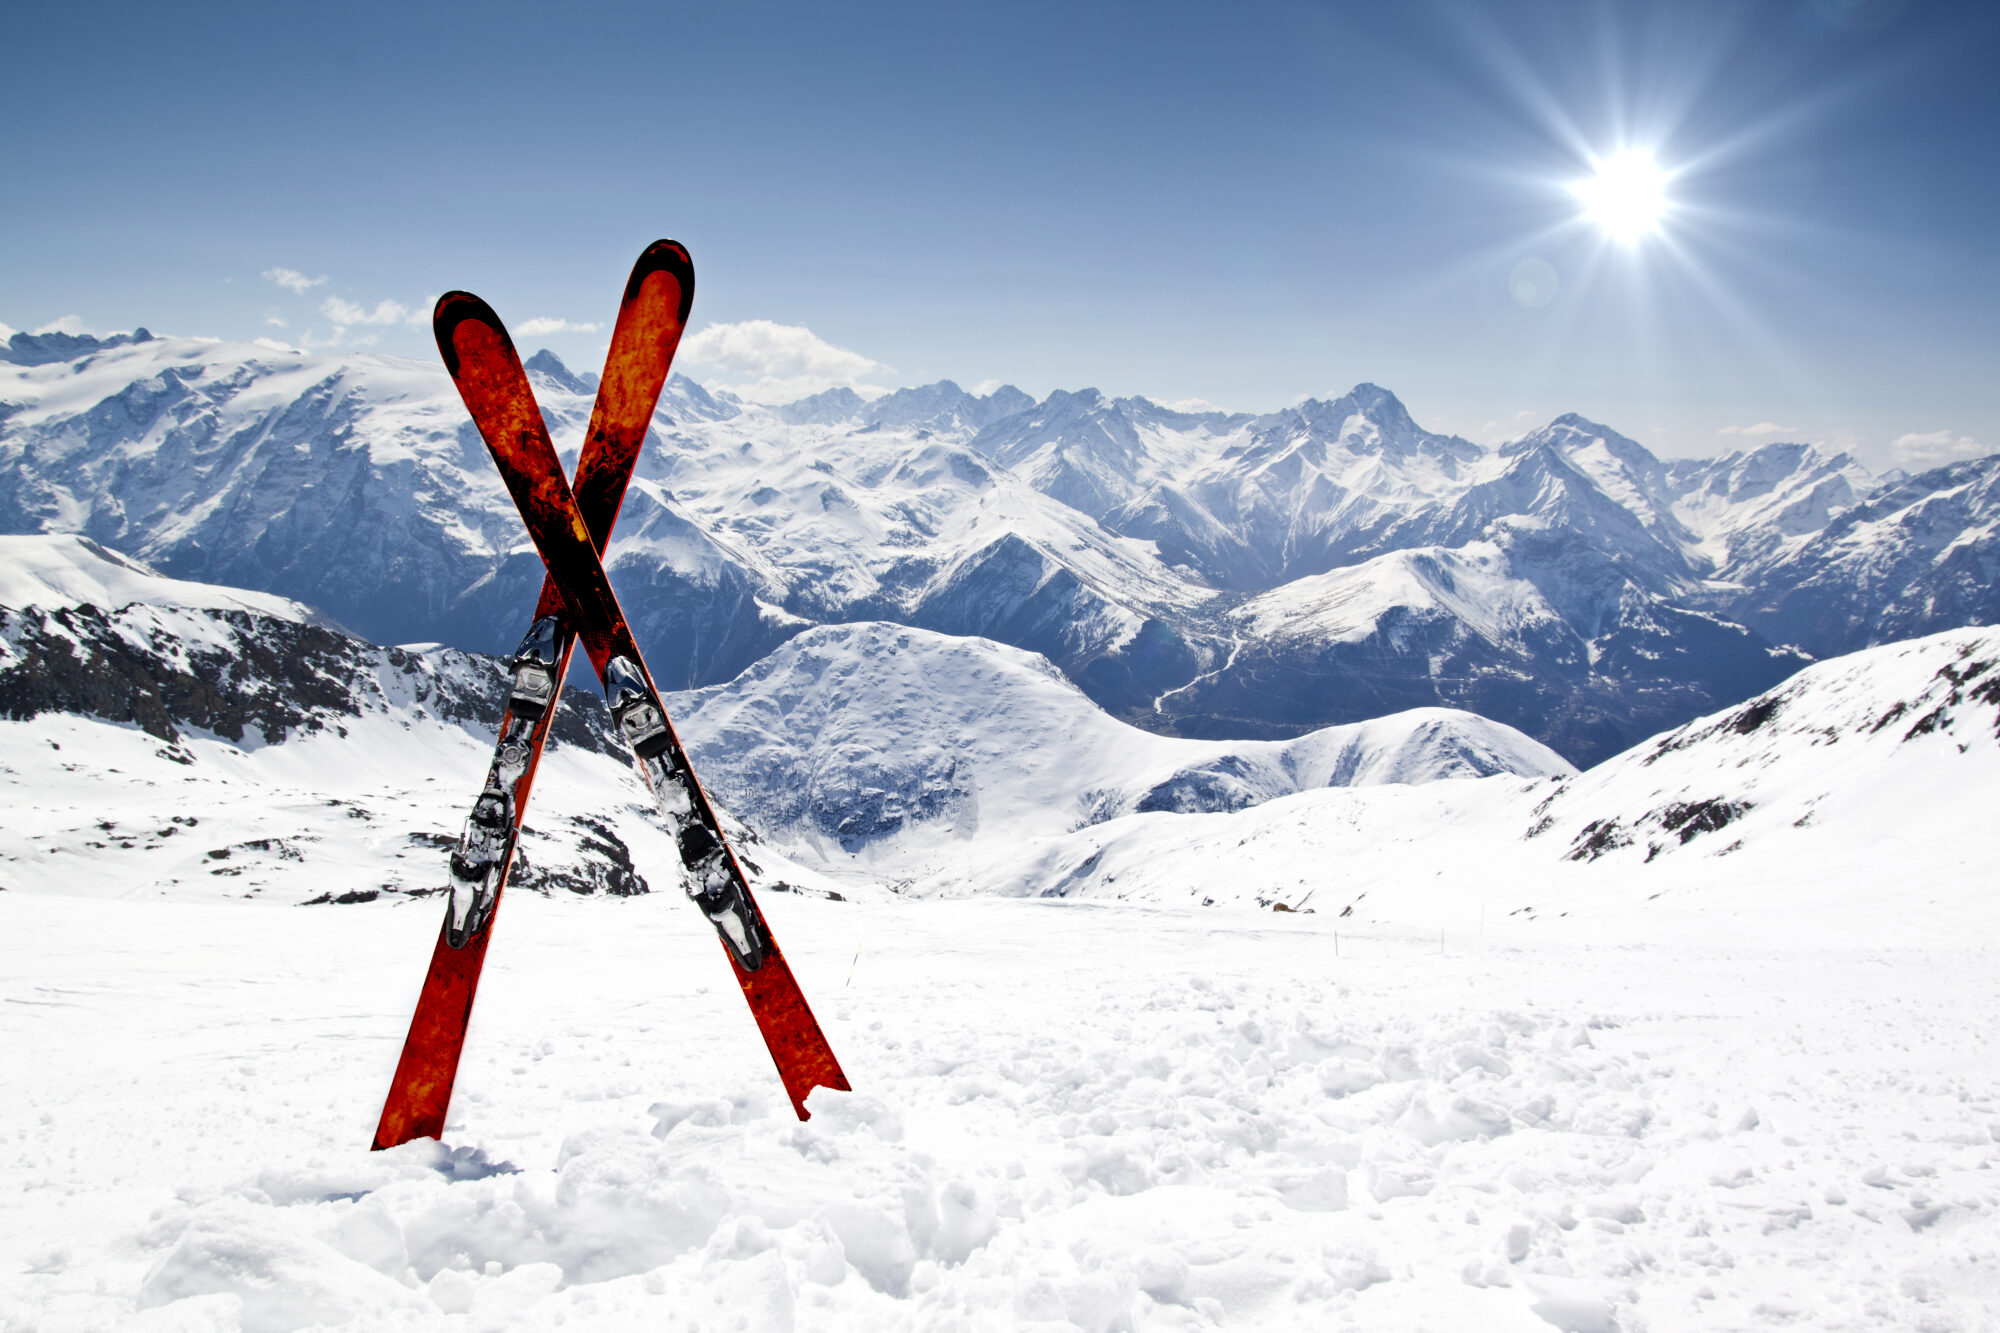 Pair of cross skis in snow in front of mountains